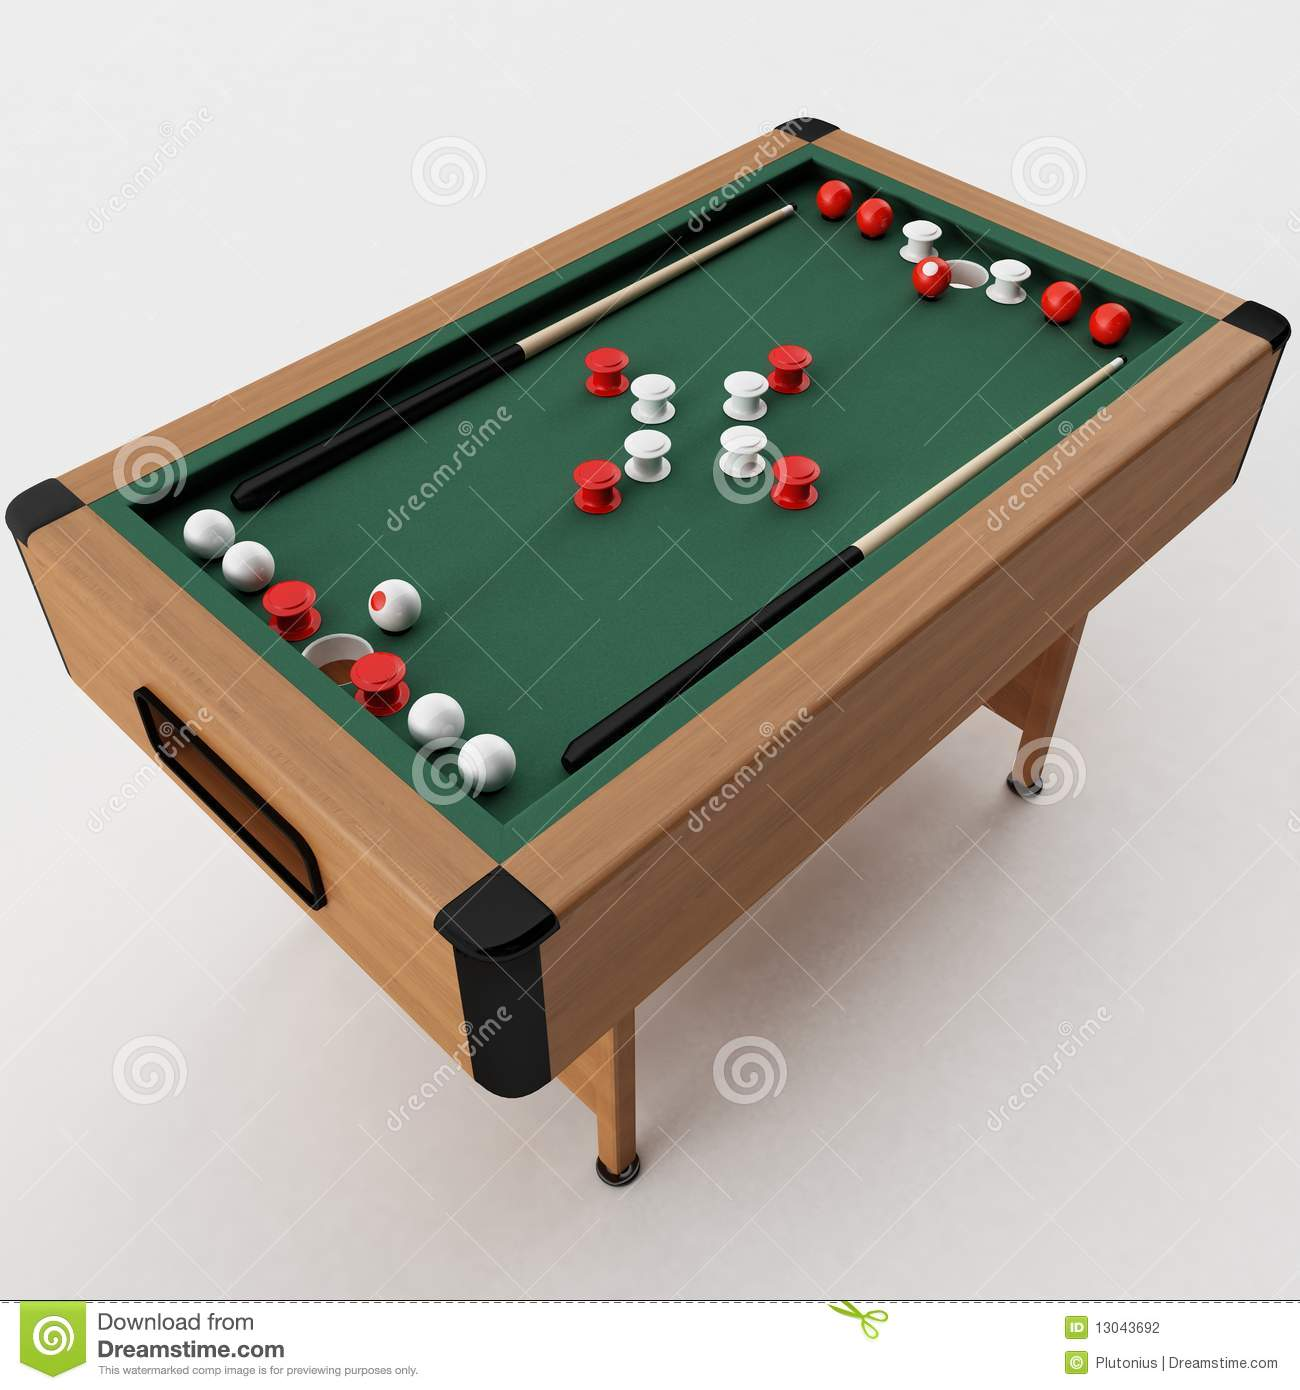 Bumper pool table stock illustration image of pool table - Bumper pool bumpers ...